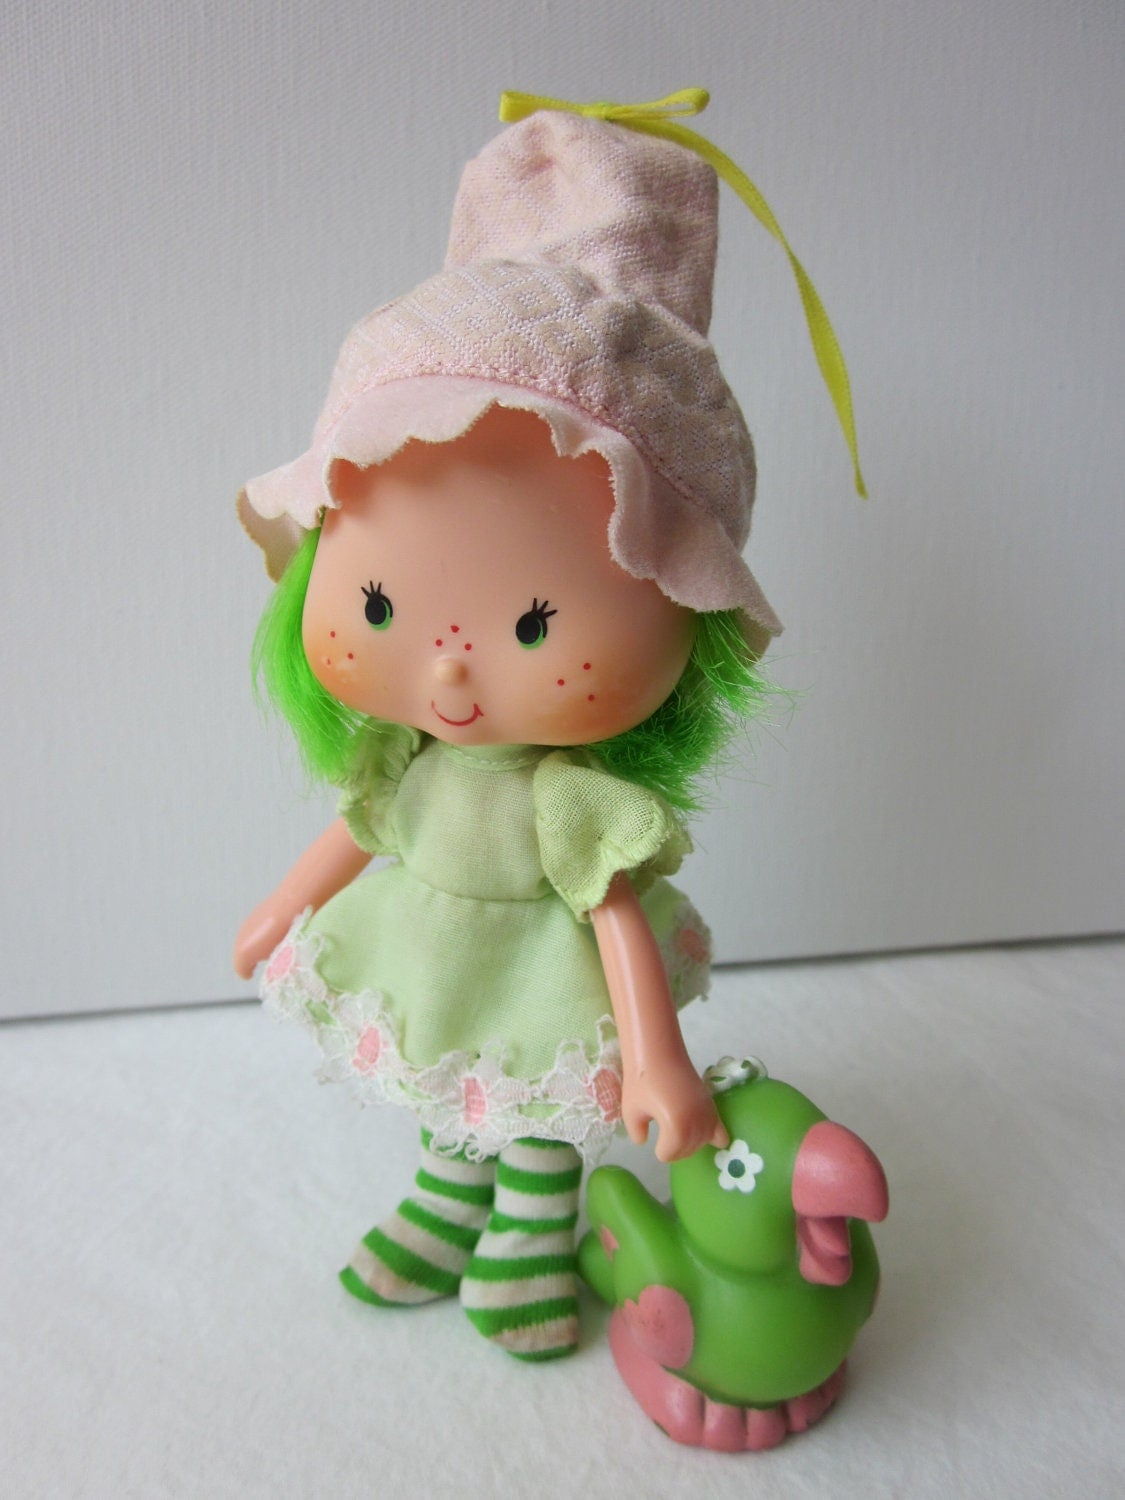 Vintage Strawberry Shortcake Lime Chiffon Doll by NostalgiaMama